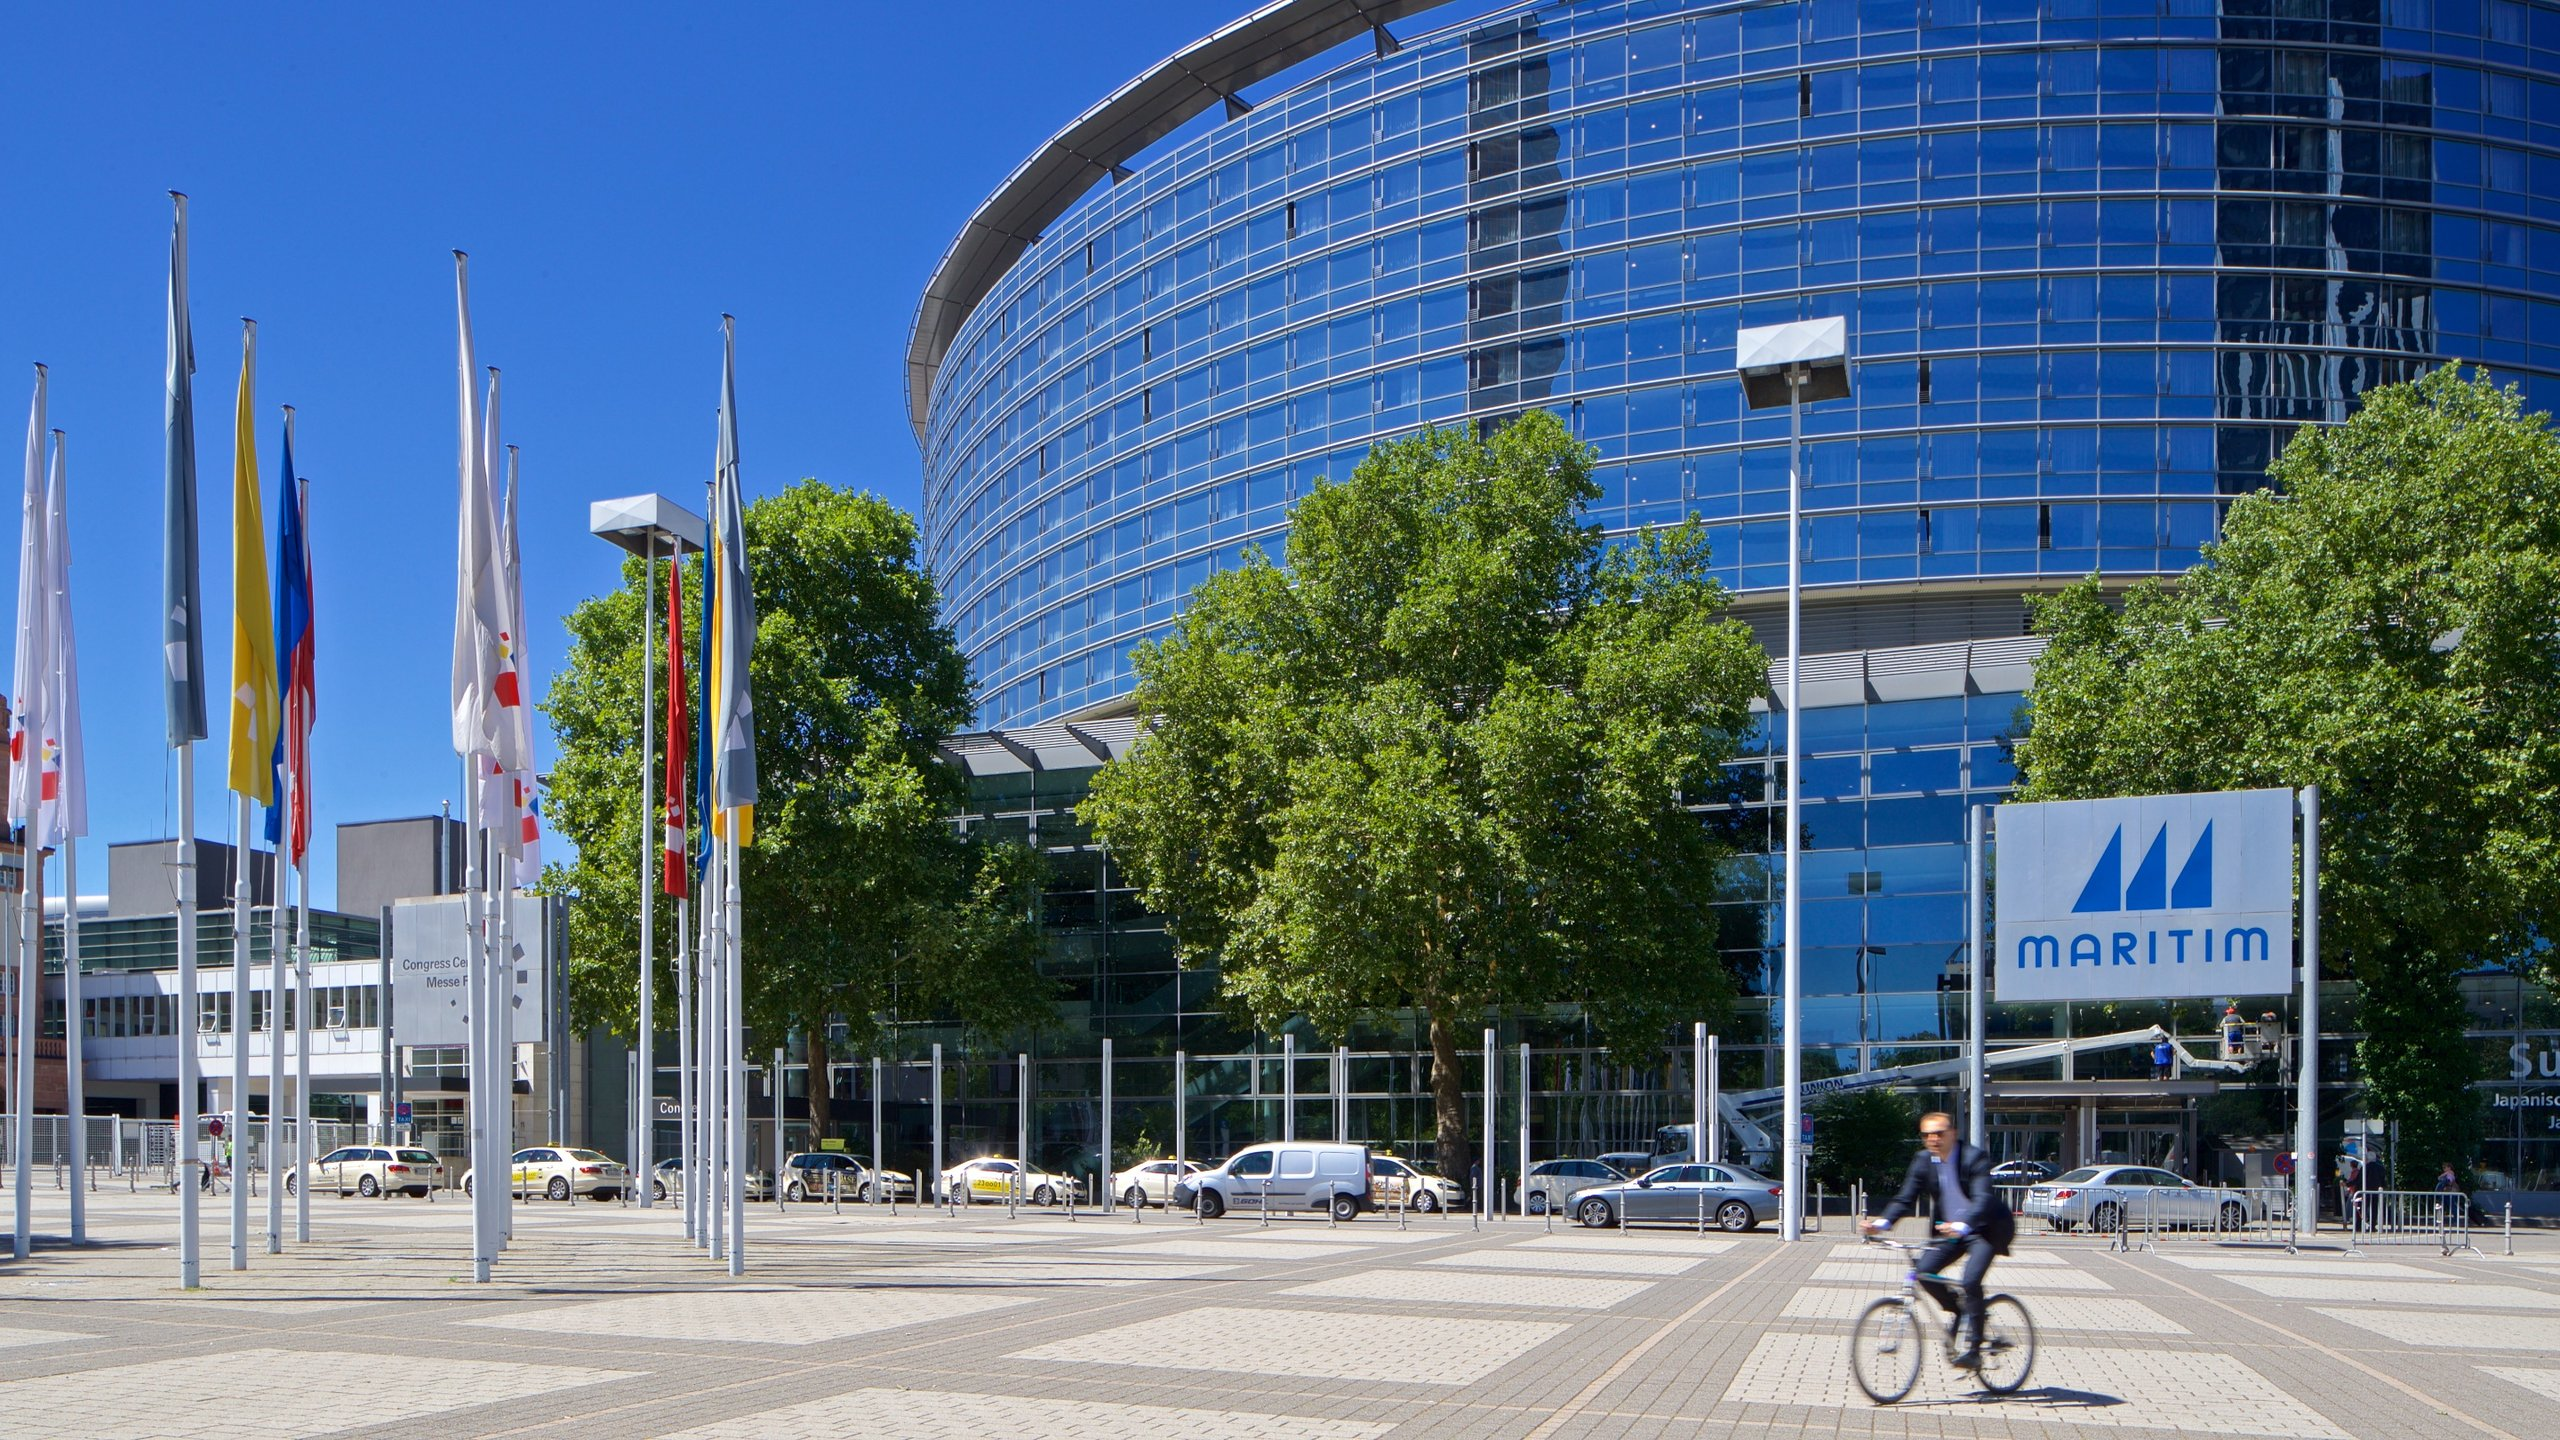 Join thousands of fellow participants at one of the many events held at Frankfurt's largest conference center, and enjoy its state-of-the-art facilities and impressive architecture.